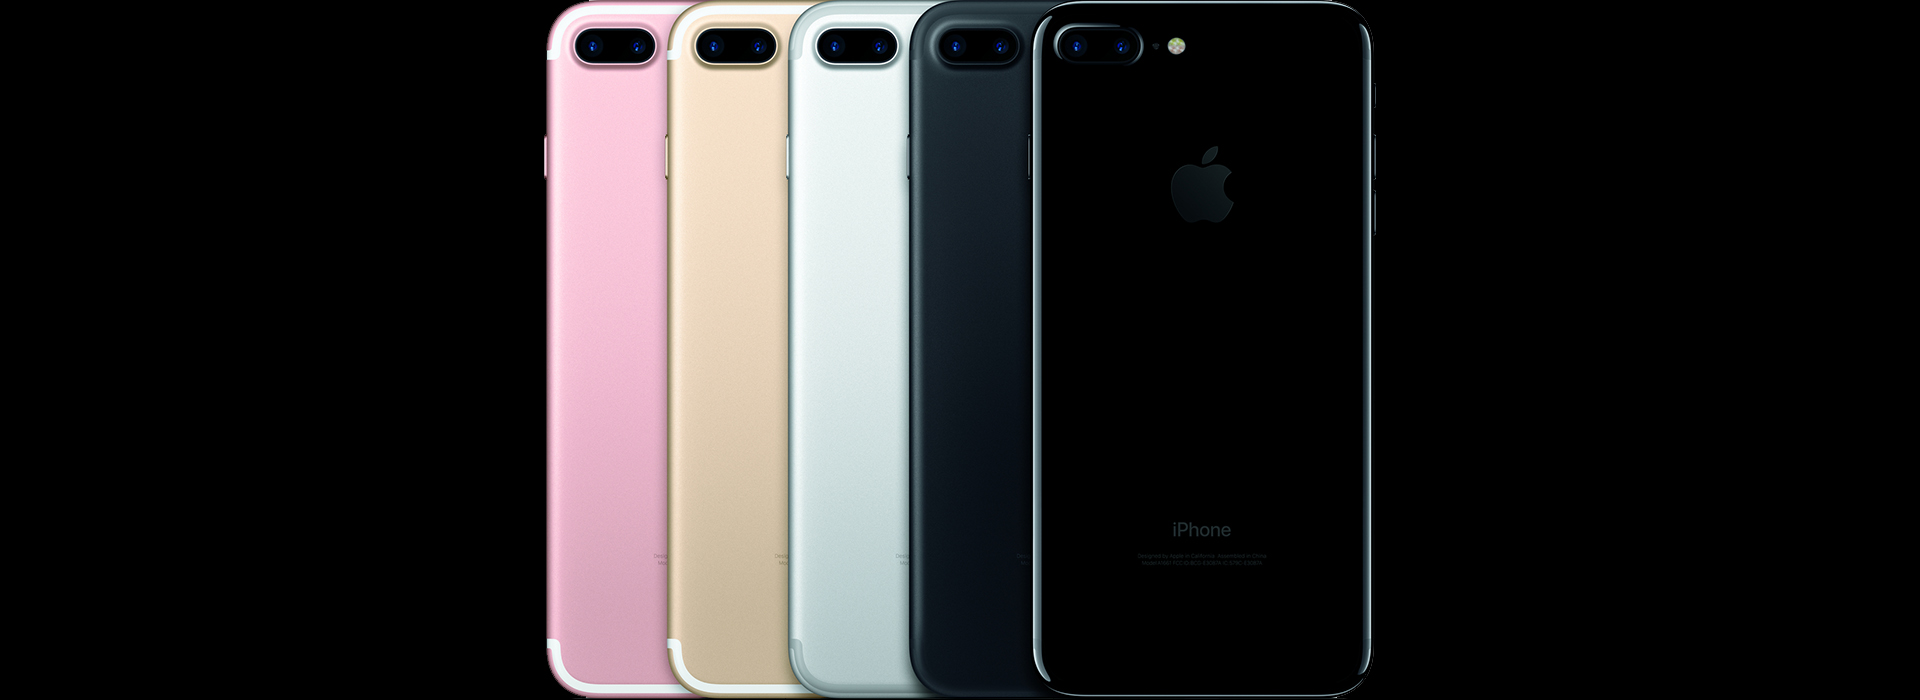 Apple iPhone 7 Plus все цвета